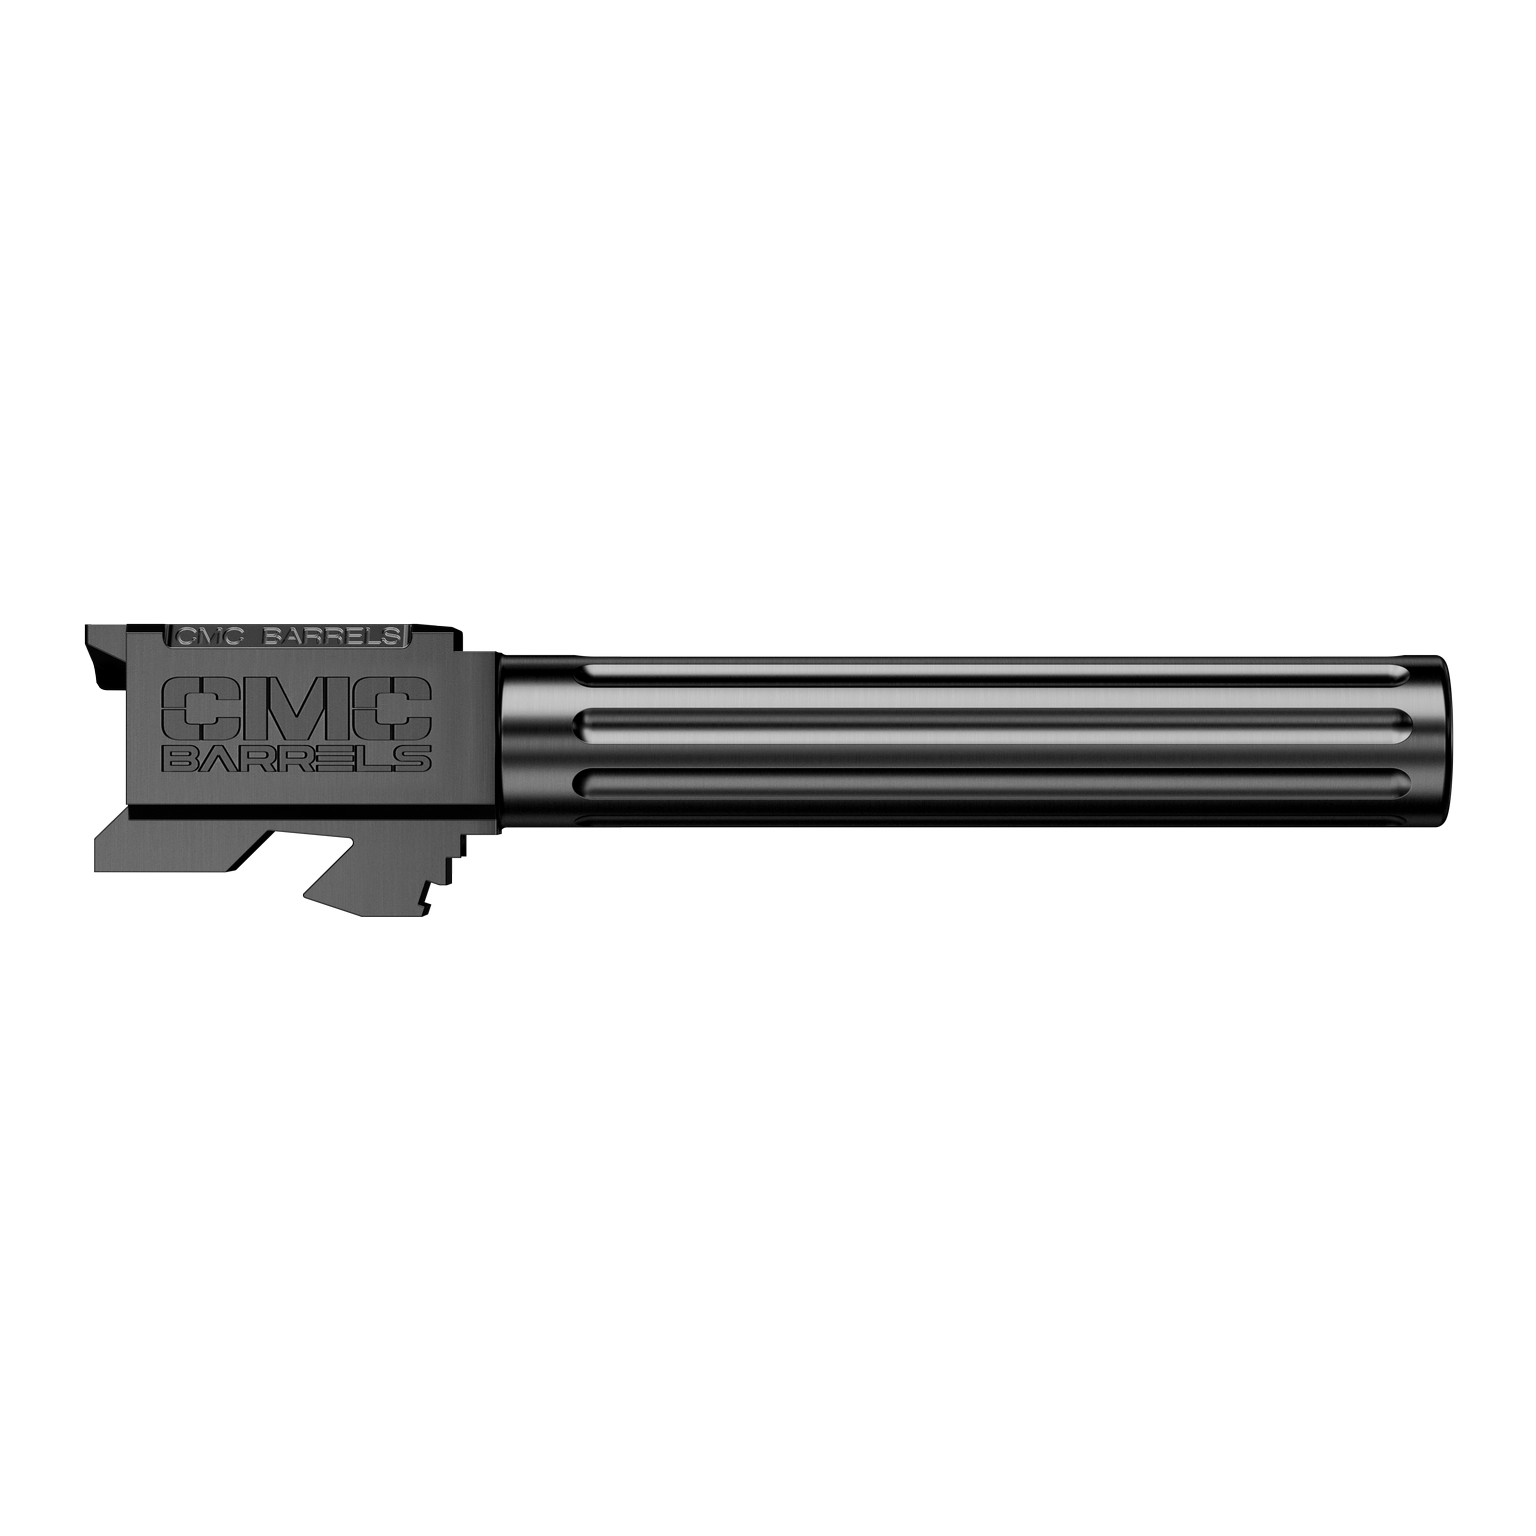 CMC Glock 17 Fluted Barrel Non Threaded